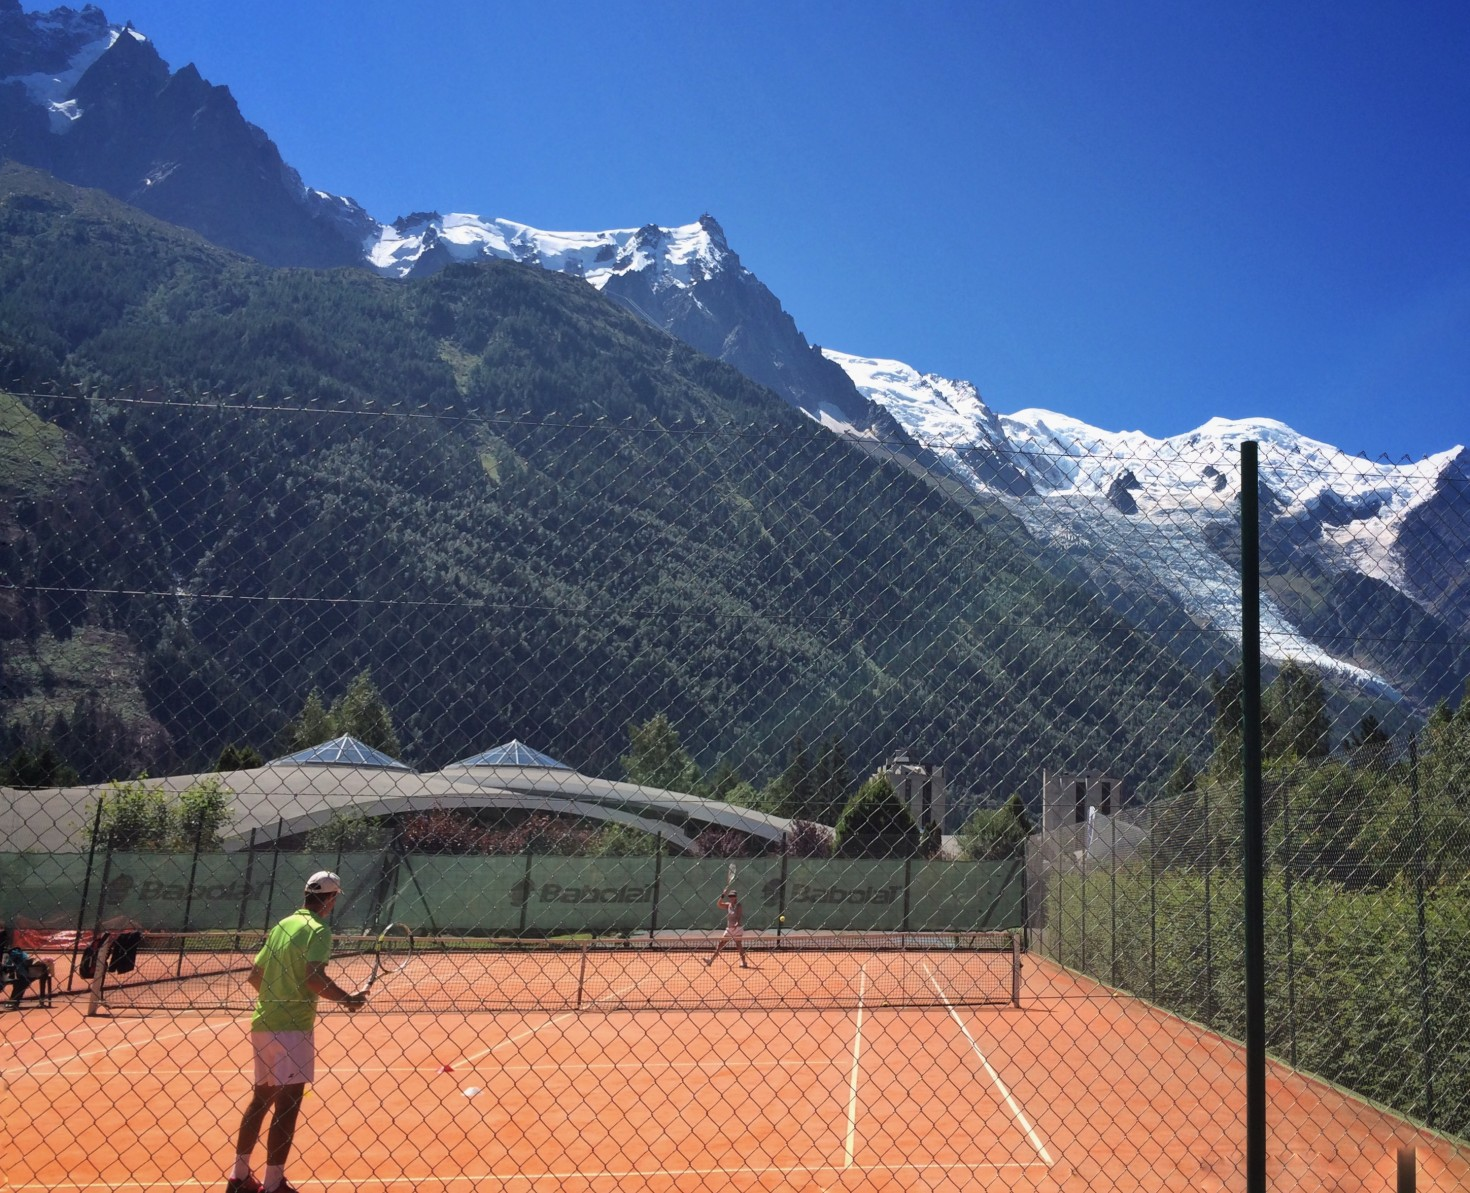 Mont Blanc above the tennis courts